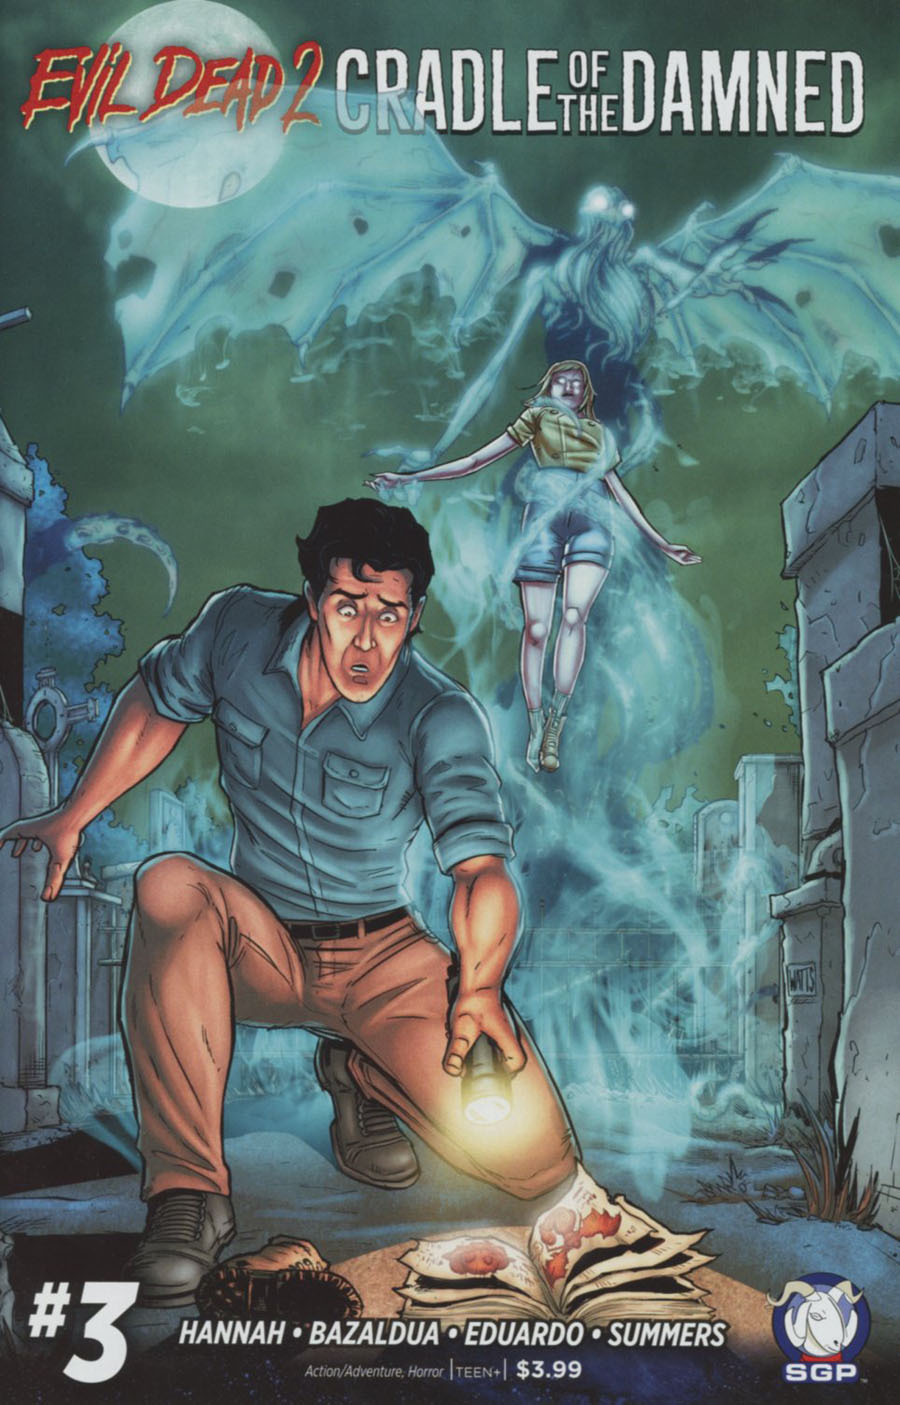 Evil Dead 2 Cradle Of The Damned #3 Cover A Regular Larry Watts Cover